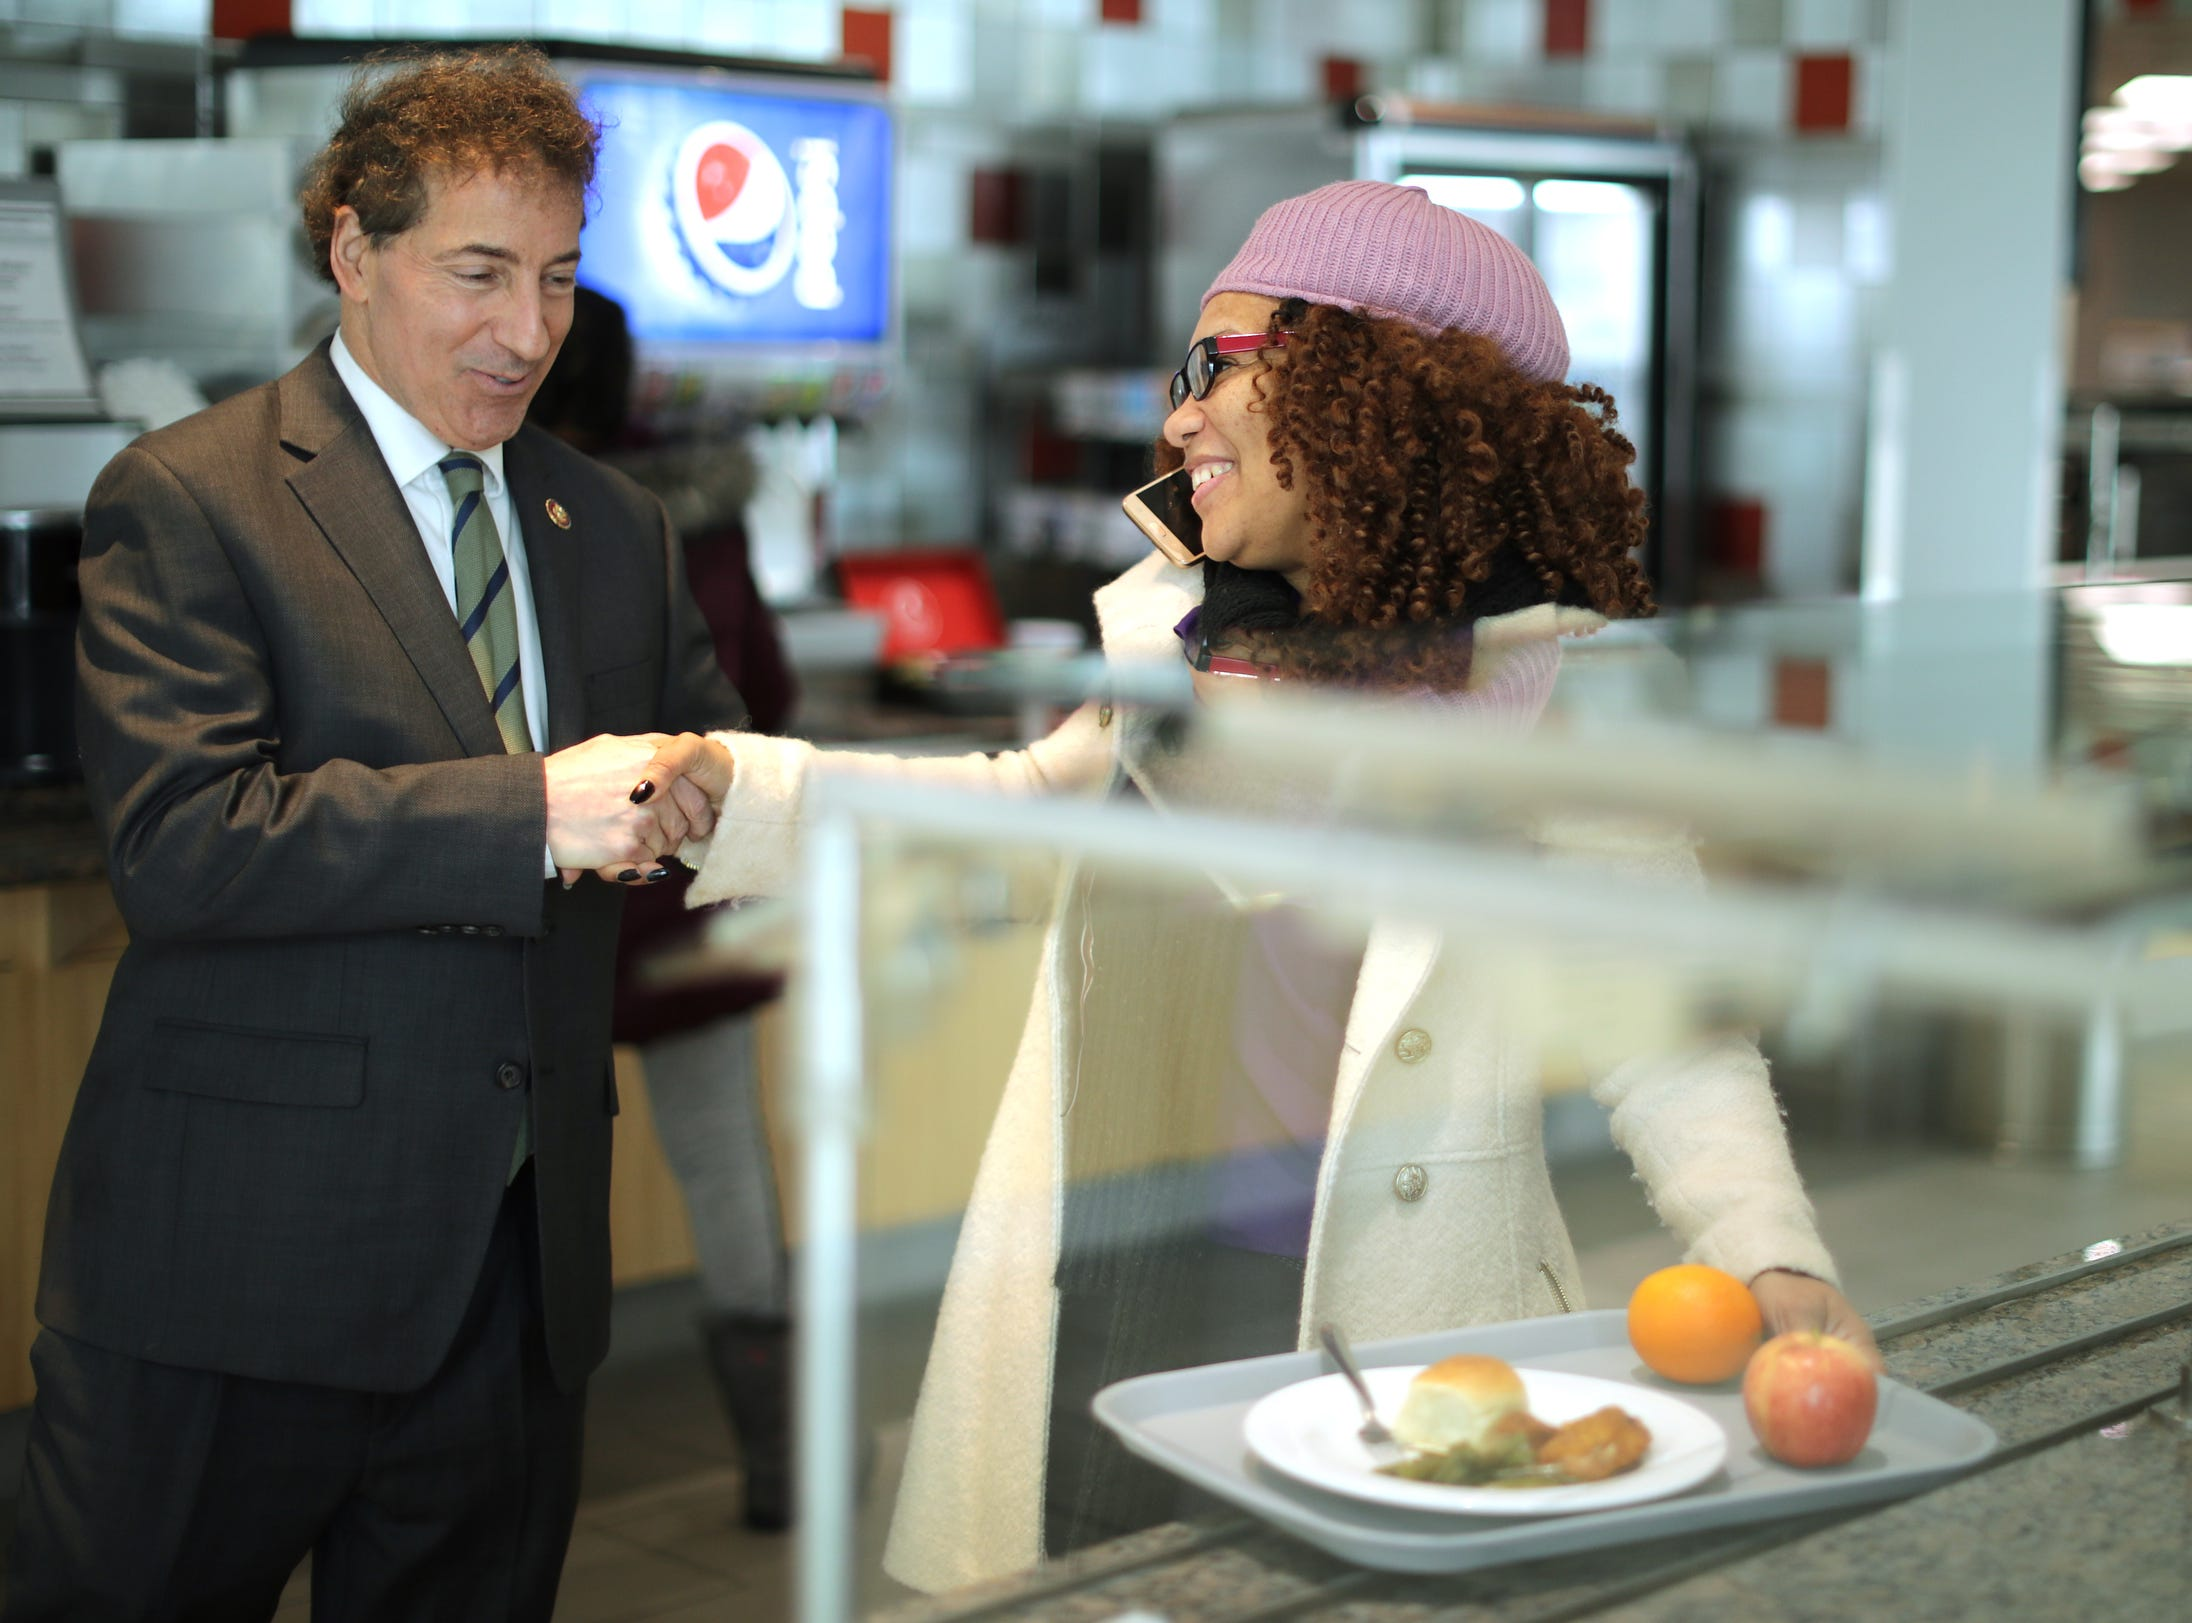 Rep. Jamie Raskin (D-MD), left, greets Consumer Product Safety Commission employee Stacy Summerville as she gathered her lunch provided for furloughed federal workers and their families at the Tommy Douglas Conference Center in Silver Spring, MD, on Monday. The Amalgamated Transit Union will continue to offer meals for federal employees affected by the shutdown all week from 12 p.m. to 6 p.m.